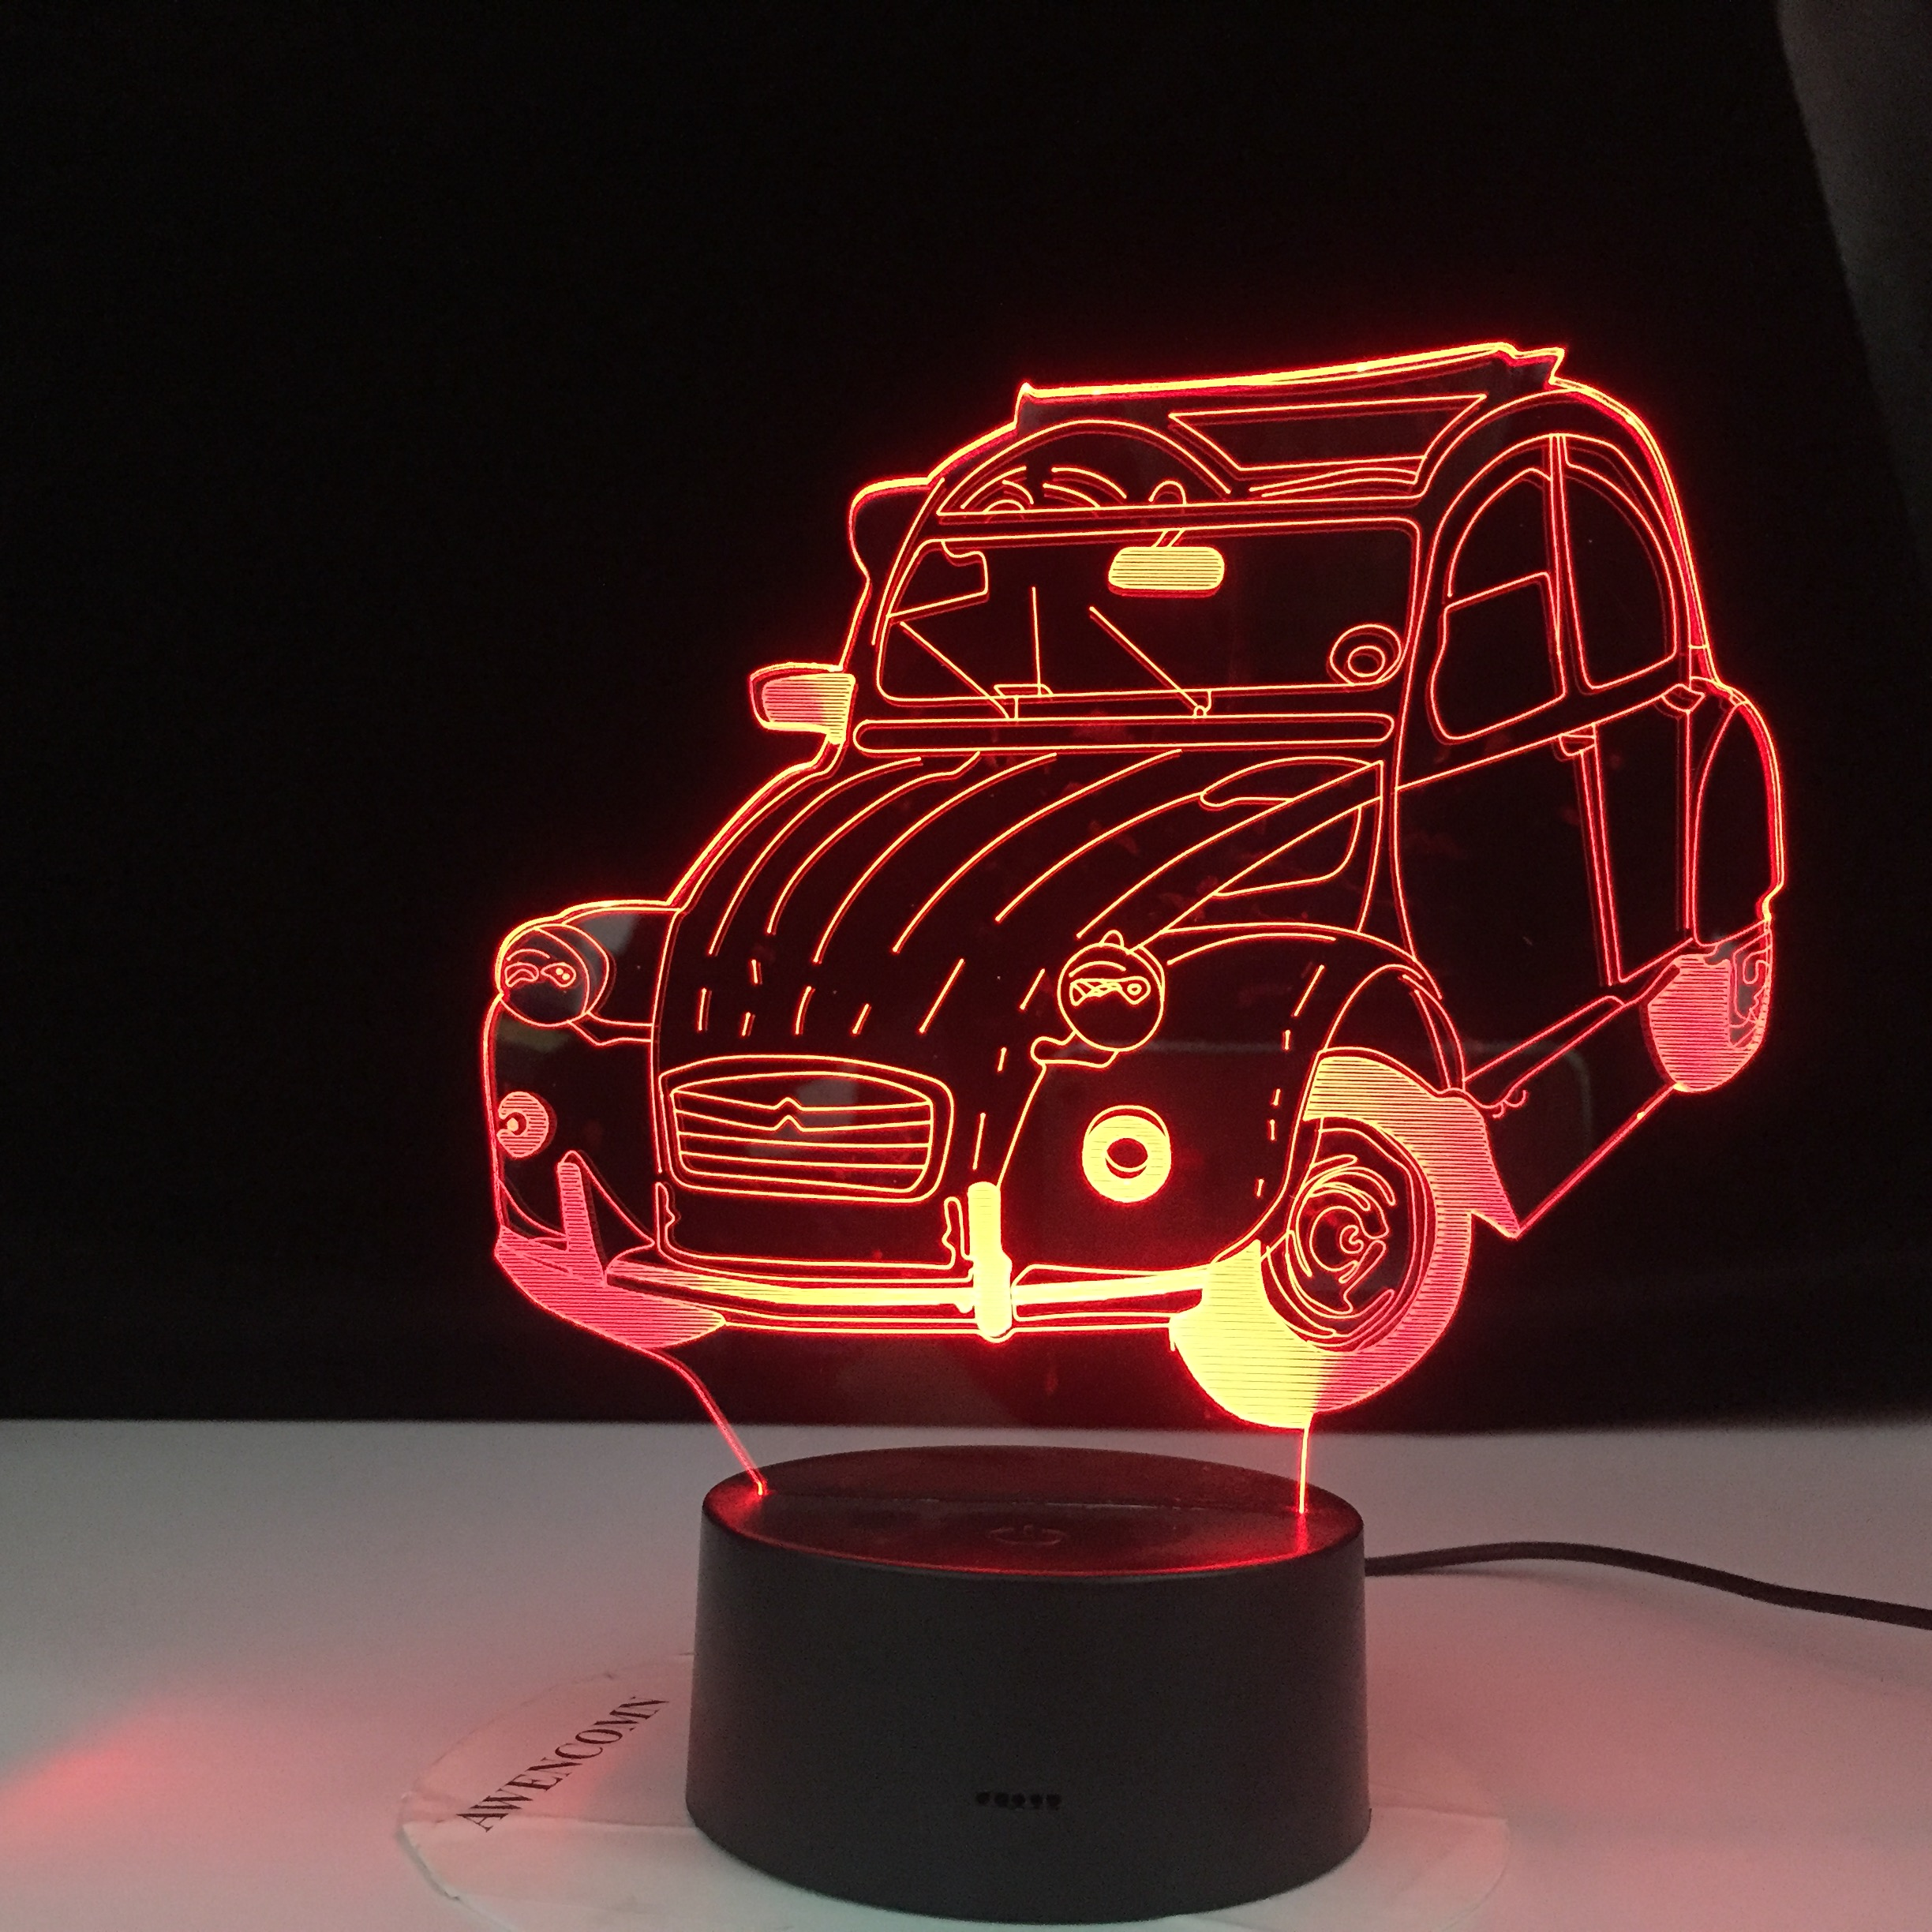 Classic Car Vintage Car Cool 3d Lamp 2cv 3d Illusion Led Night Light For Home Decoration Child Bedroom Adult Office Decor Light